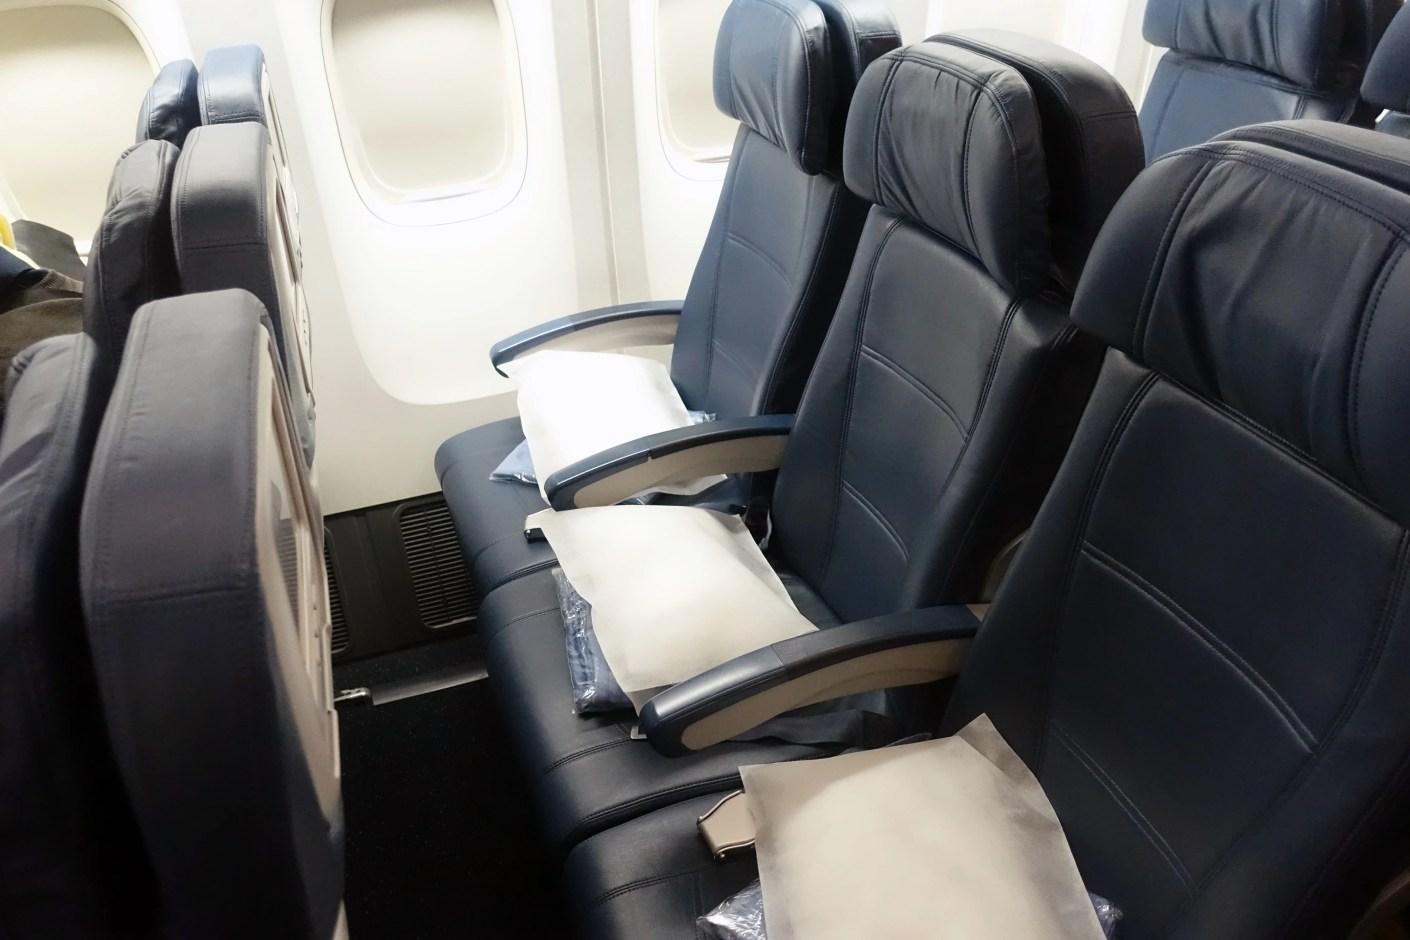 Flight Review: Delta (777-200LR) Economy From New York to